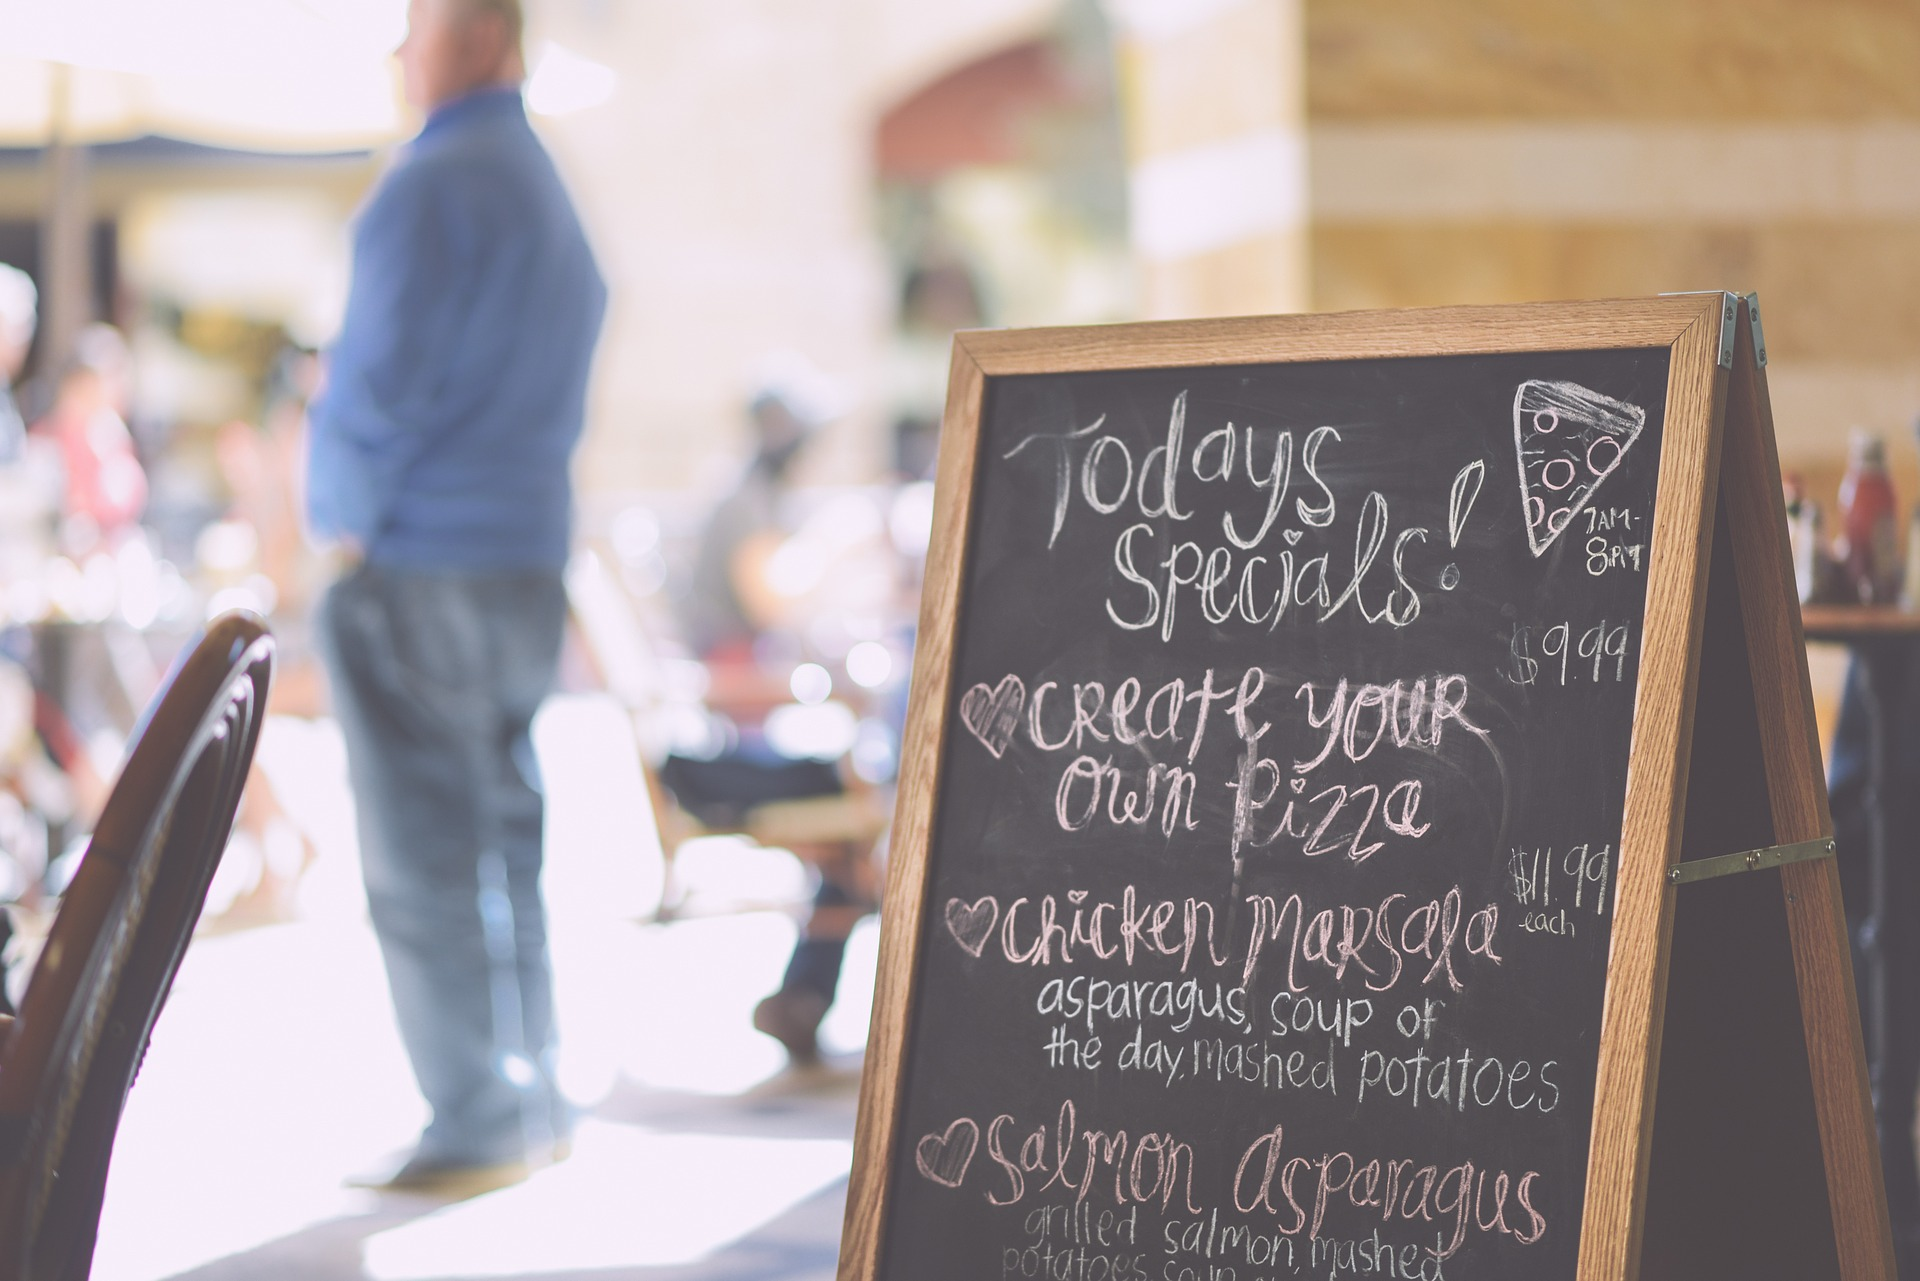 Restaurant Menu Designing: 5 Important things to consider